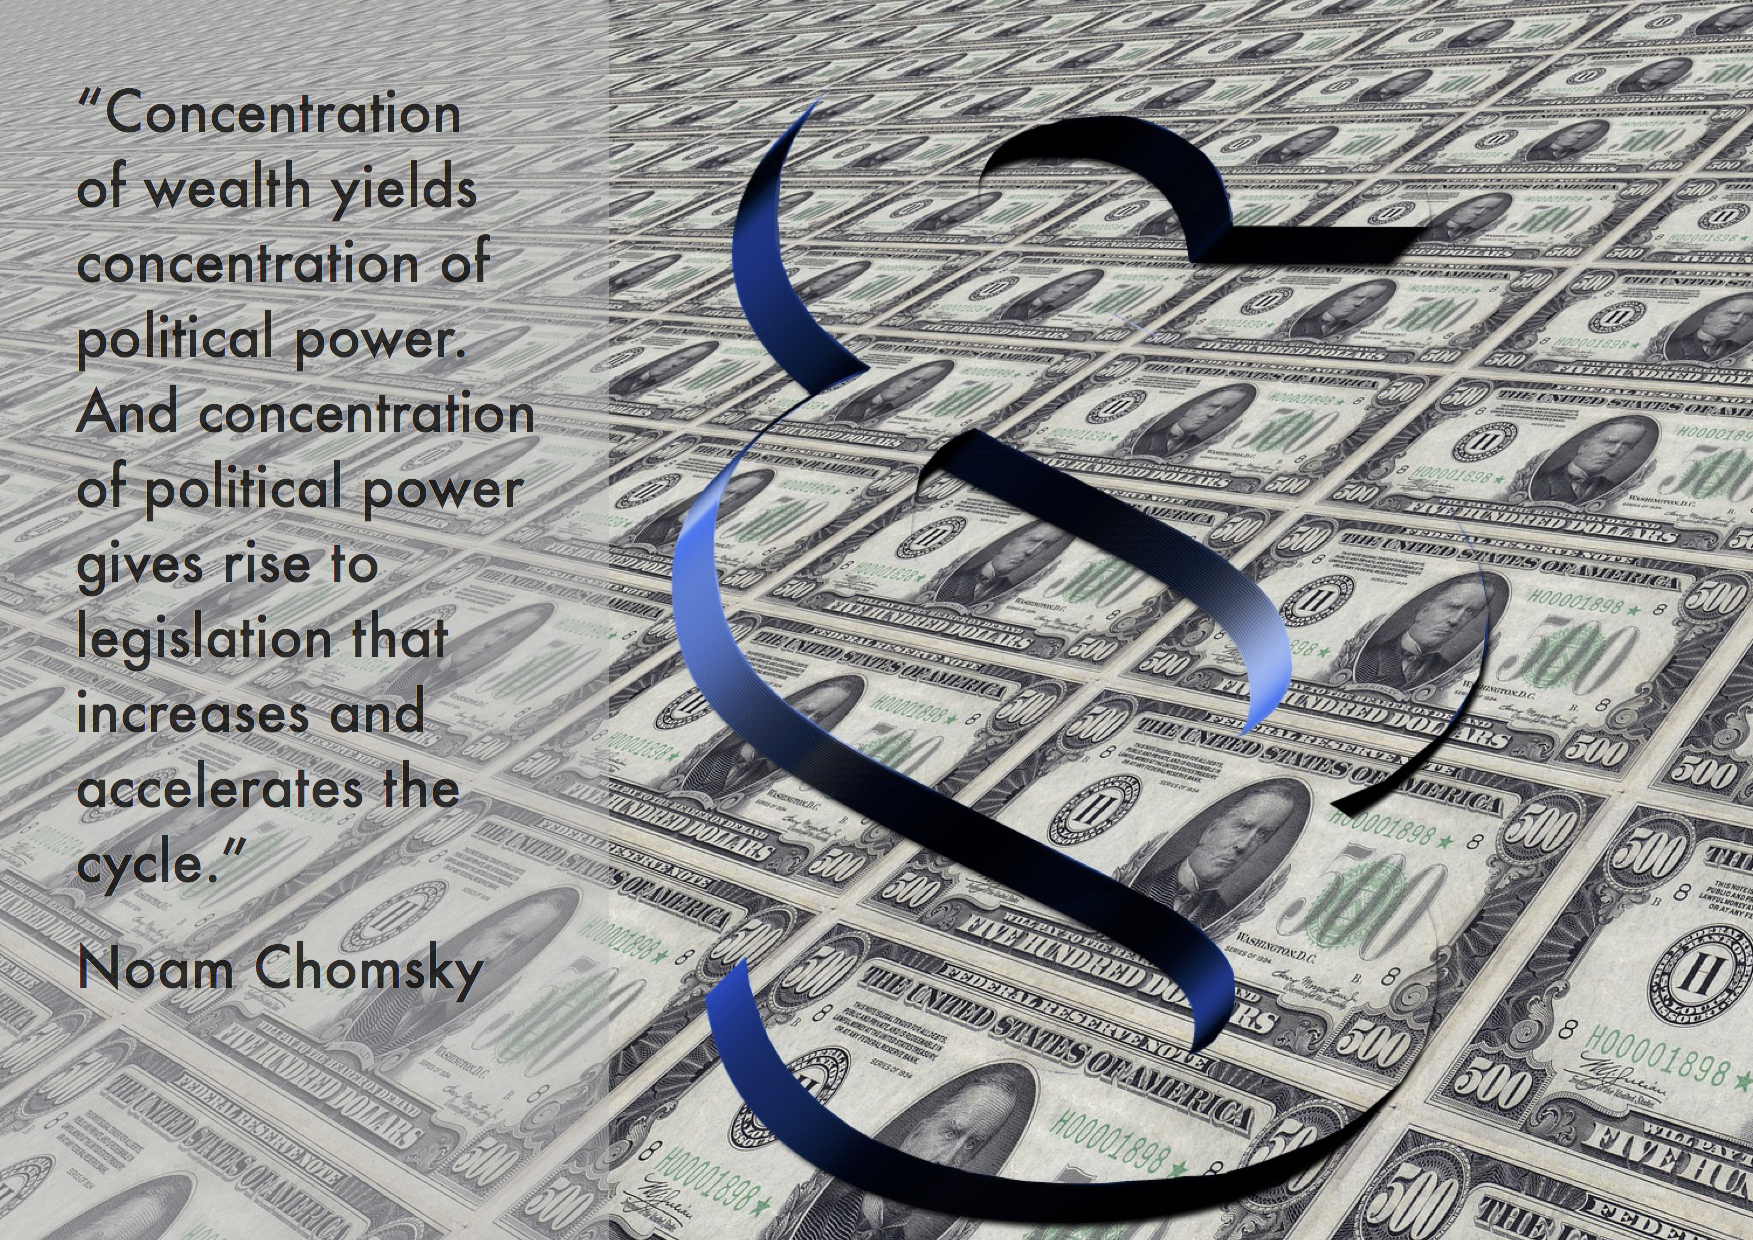 "Citat af Noam Chomsky: ""Concentration of wealth yields concentration of political power. And concentration of political power gives rise to legislation that increases and accelerates the cycle."" Originalfoto og -illustration: pixabay.com. Citatcollage: Maria Busch."